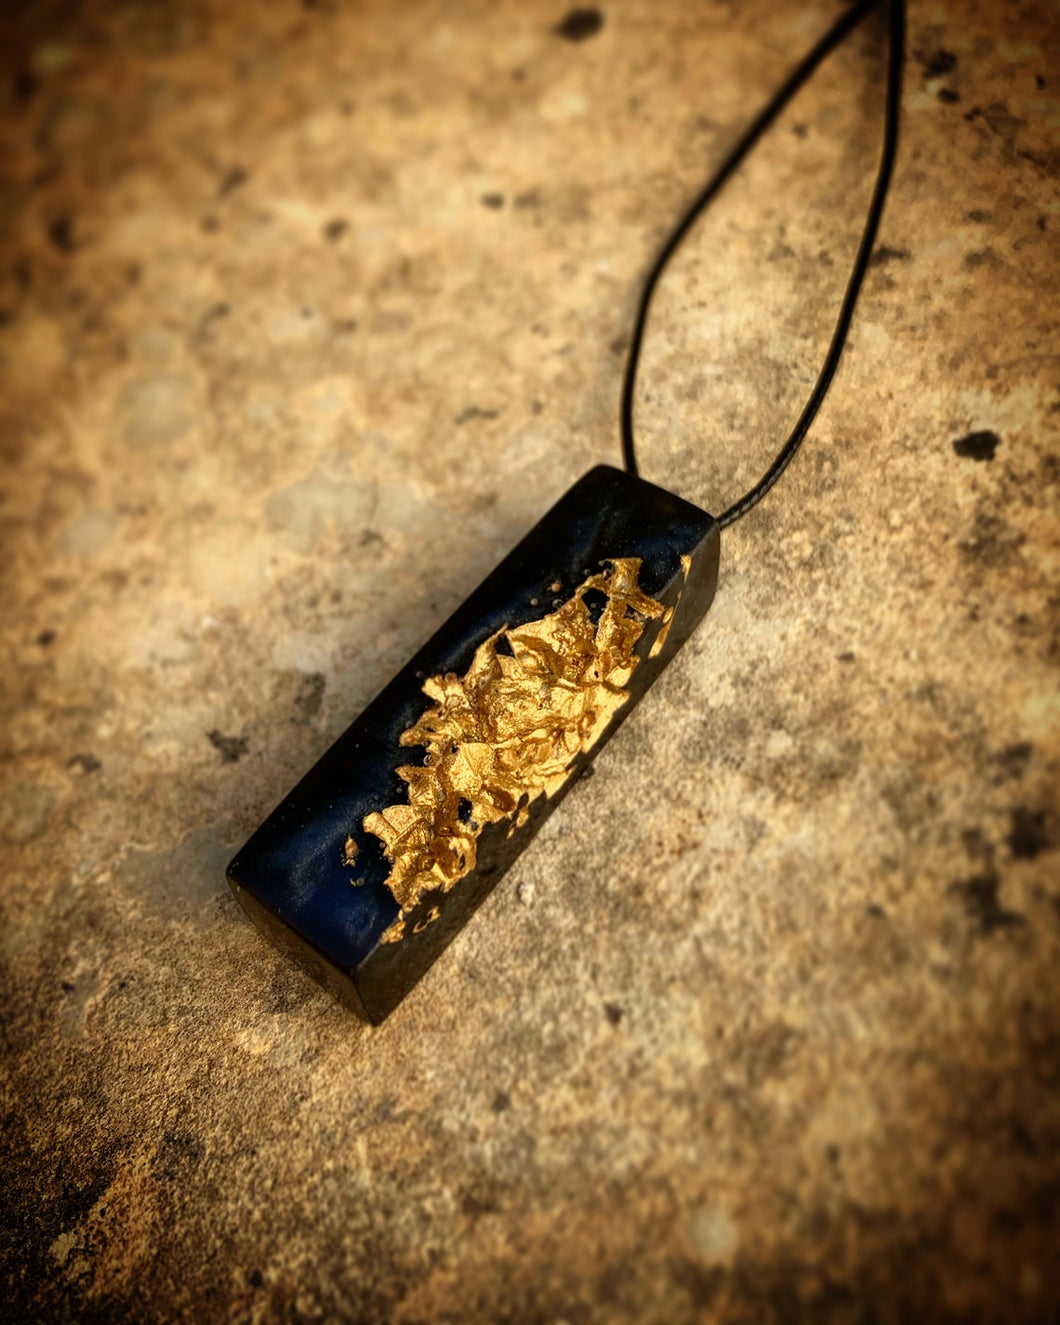 Minimalist Black and Gold Geode Druzy Pendant - Obsidian Black Resin Necklace - Indie Style Jewelry - Wearable Wood